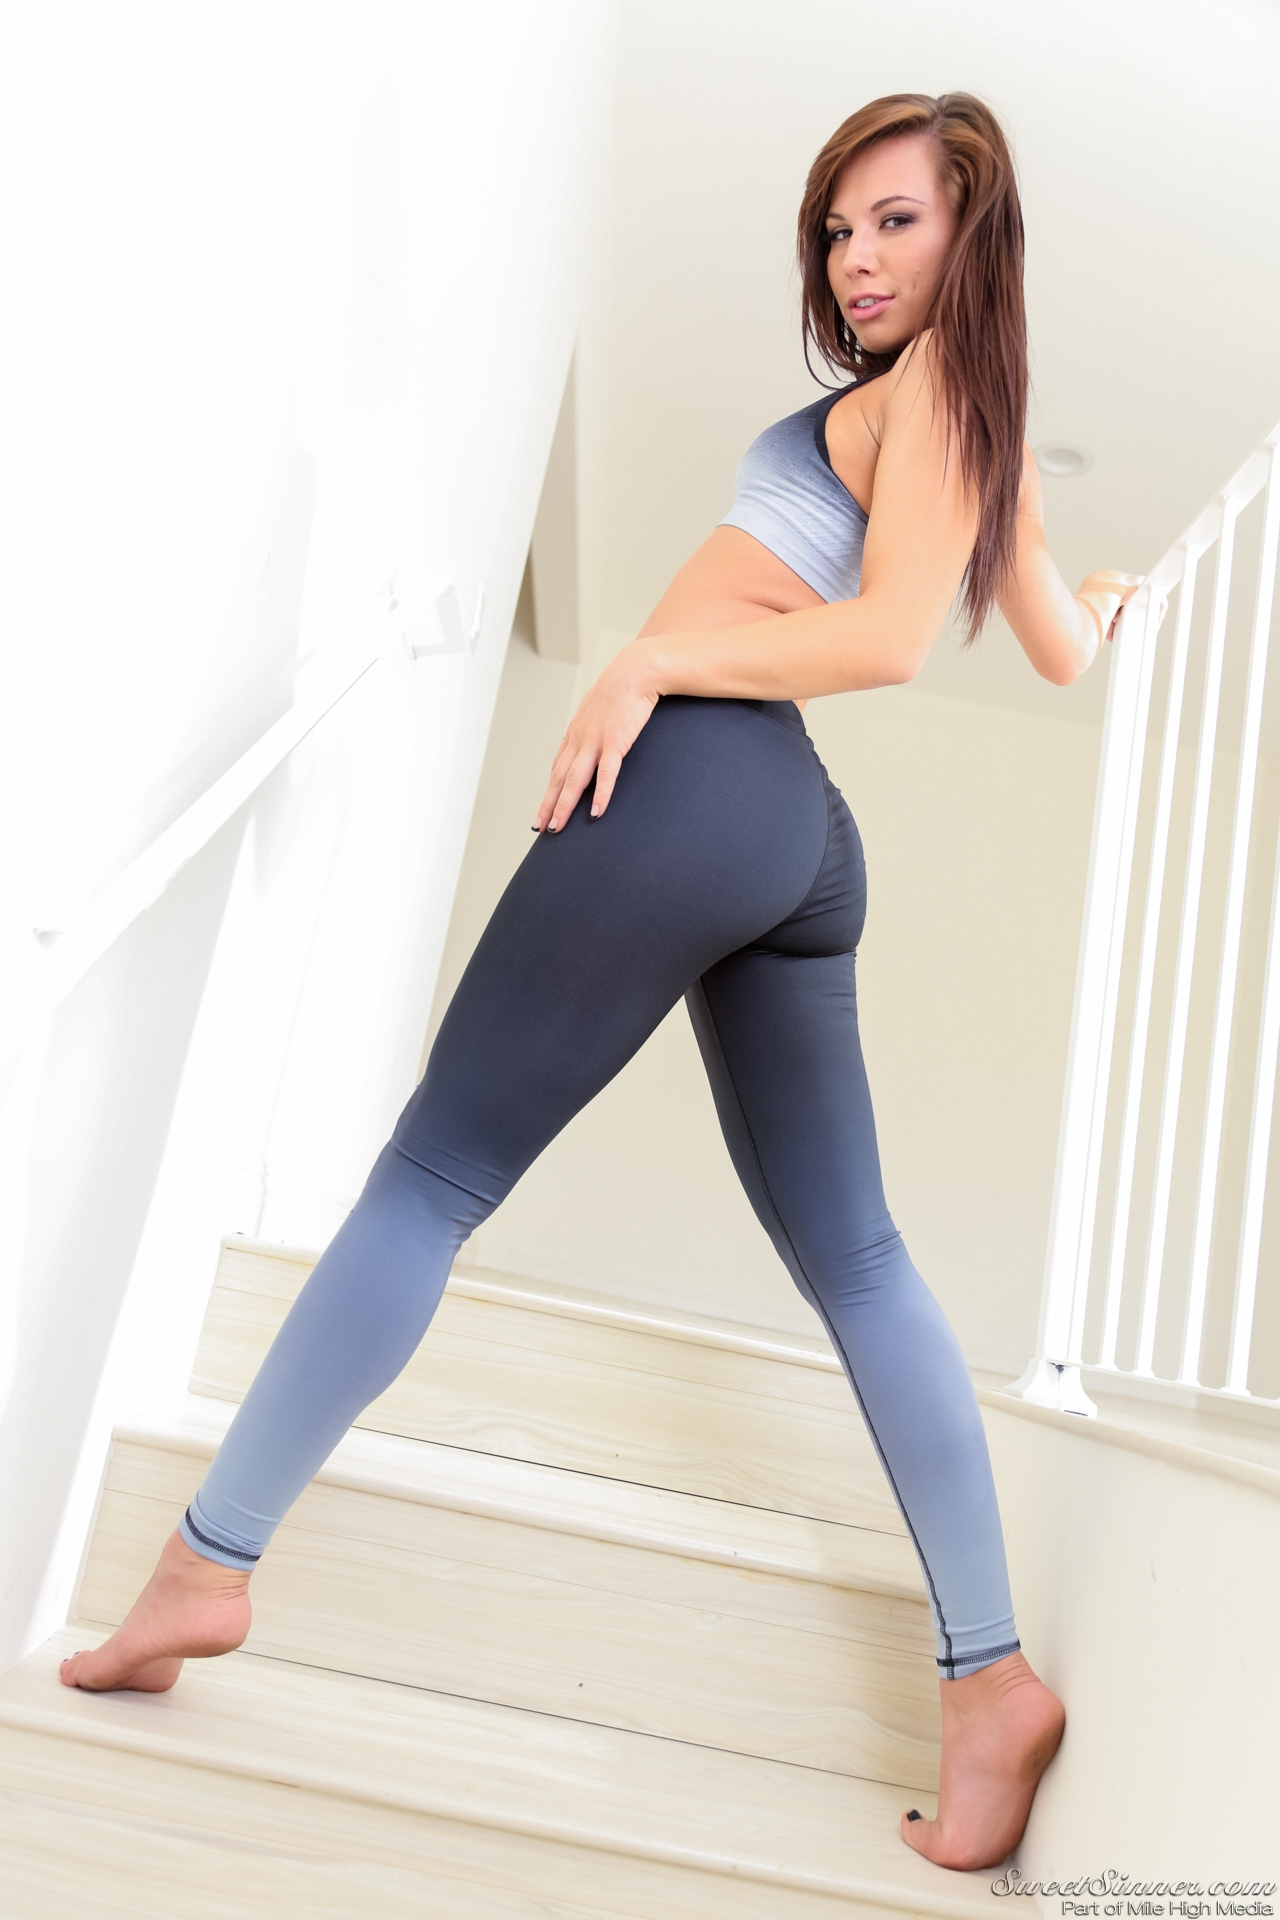 Hot Girls Tight Yoga Pants